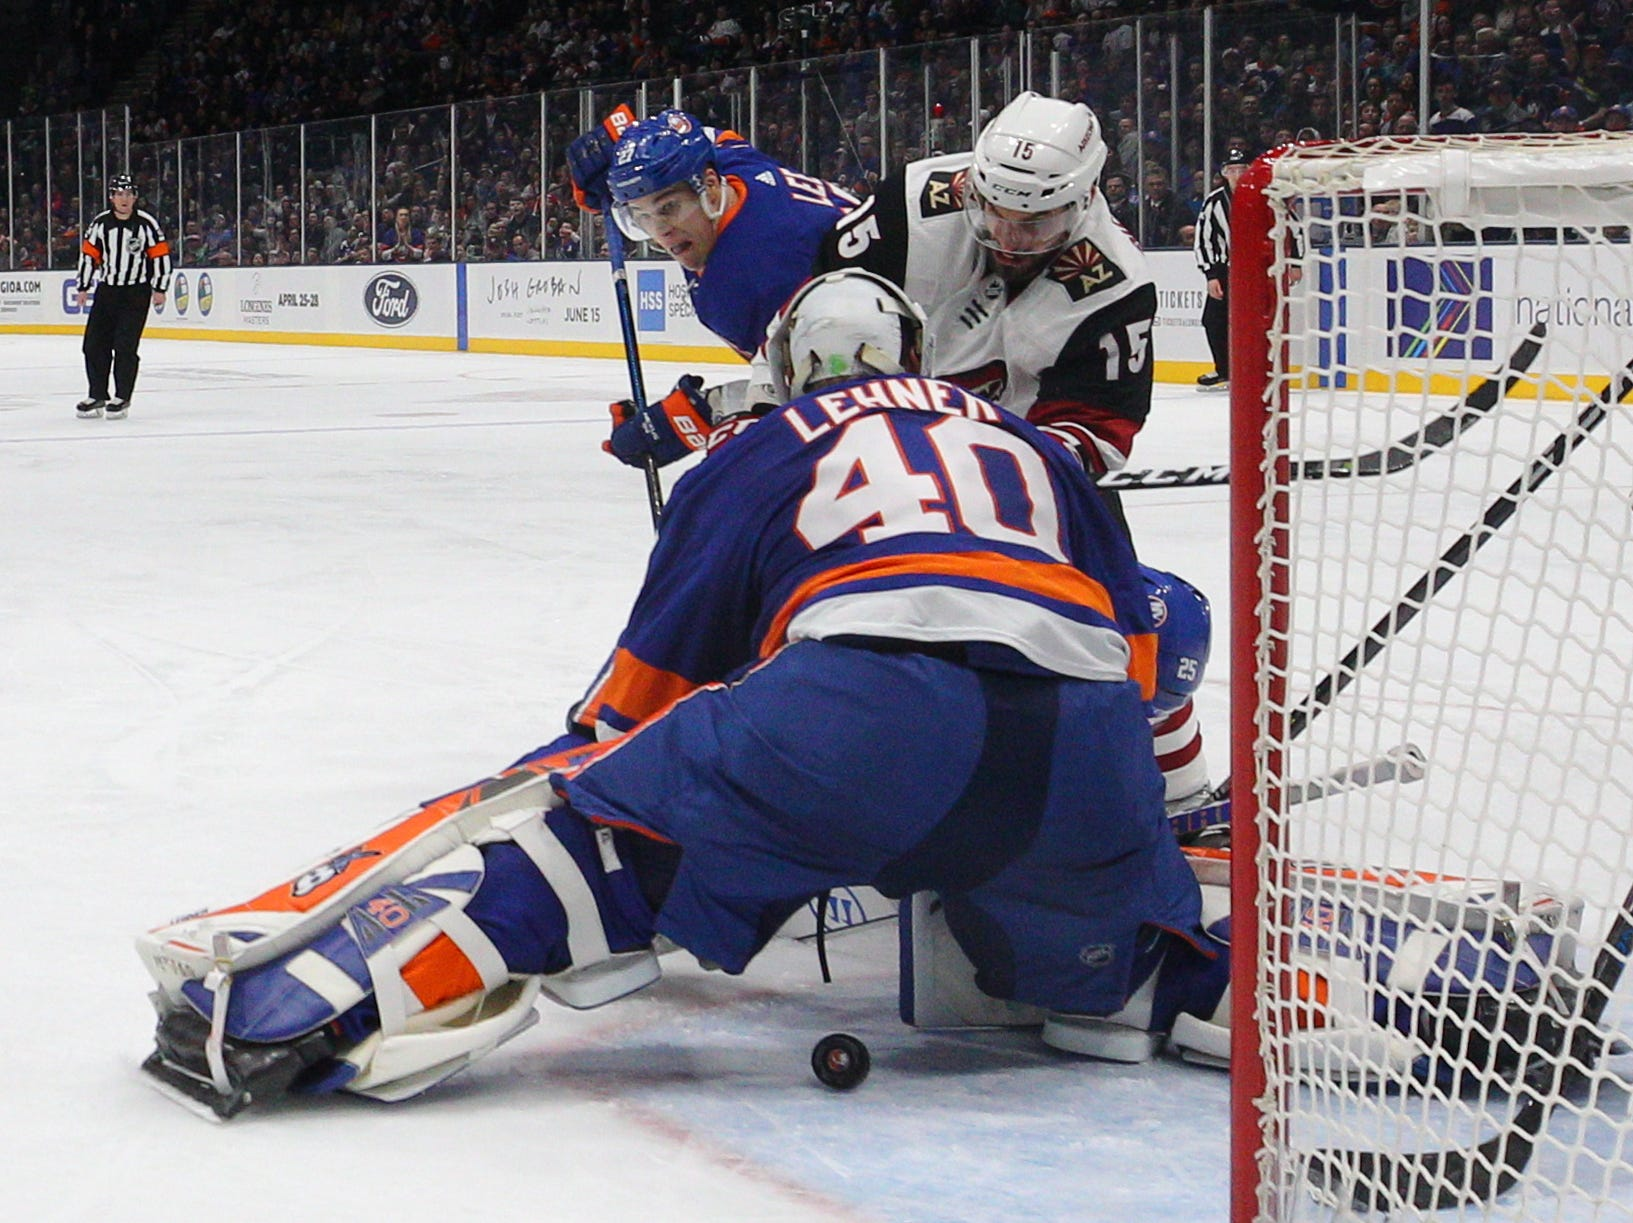 Mar 24, 2019; Uniondale, NY, USA; Arizona Coyotes center Brad Richardson (15) shoots against New York Islanders goalie Robin Lehner (40) during the third period at Nassau Veterans Memorial Coliseum. Mandatory Credit: Brad Penner-USA TODAY Sports